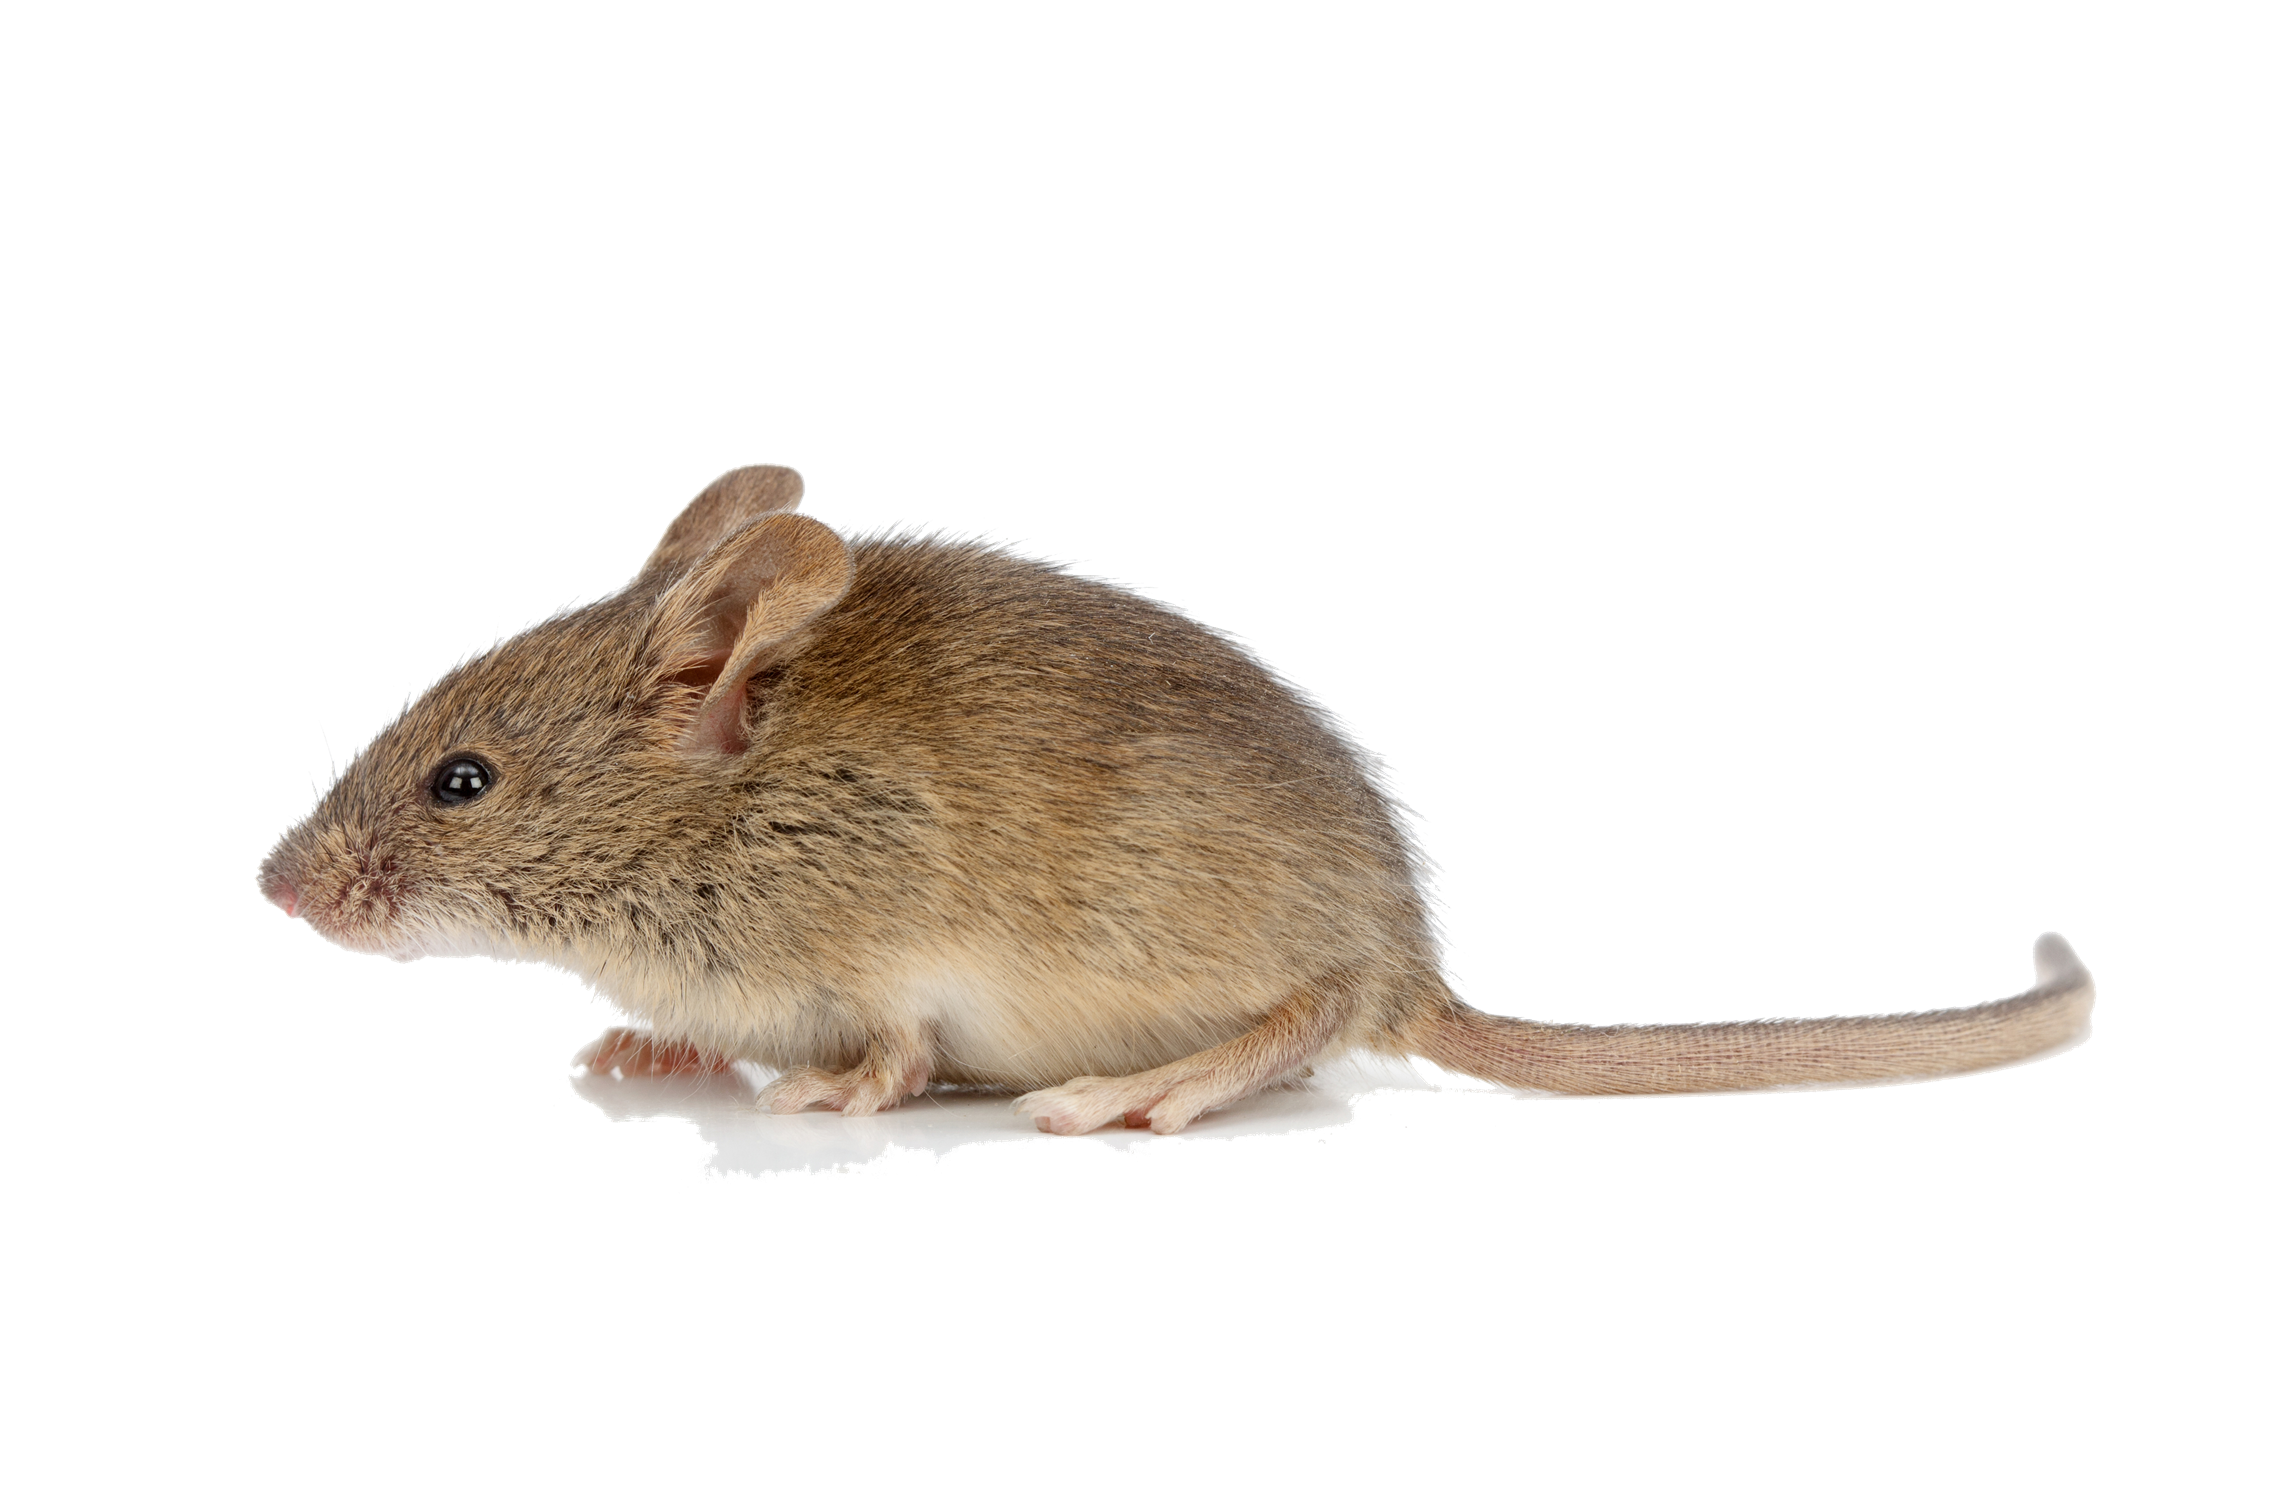 Mouse png. Animal mice transparent images